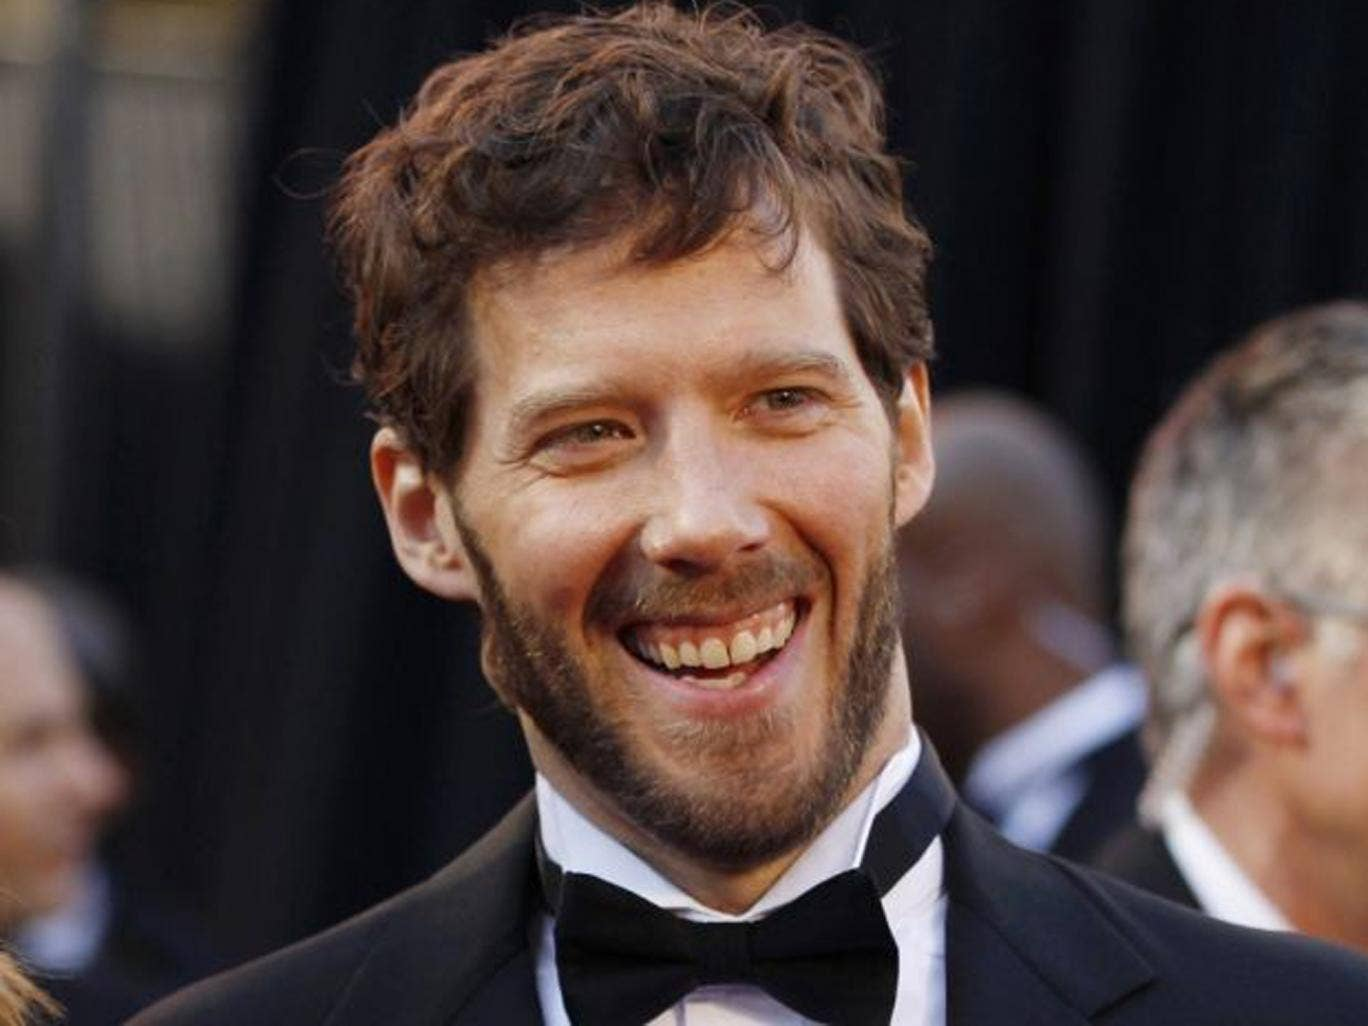 Aron Ralston at the 83rd Academy Awards in Hollywood in 2011